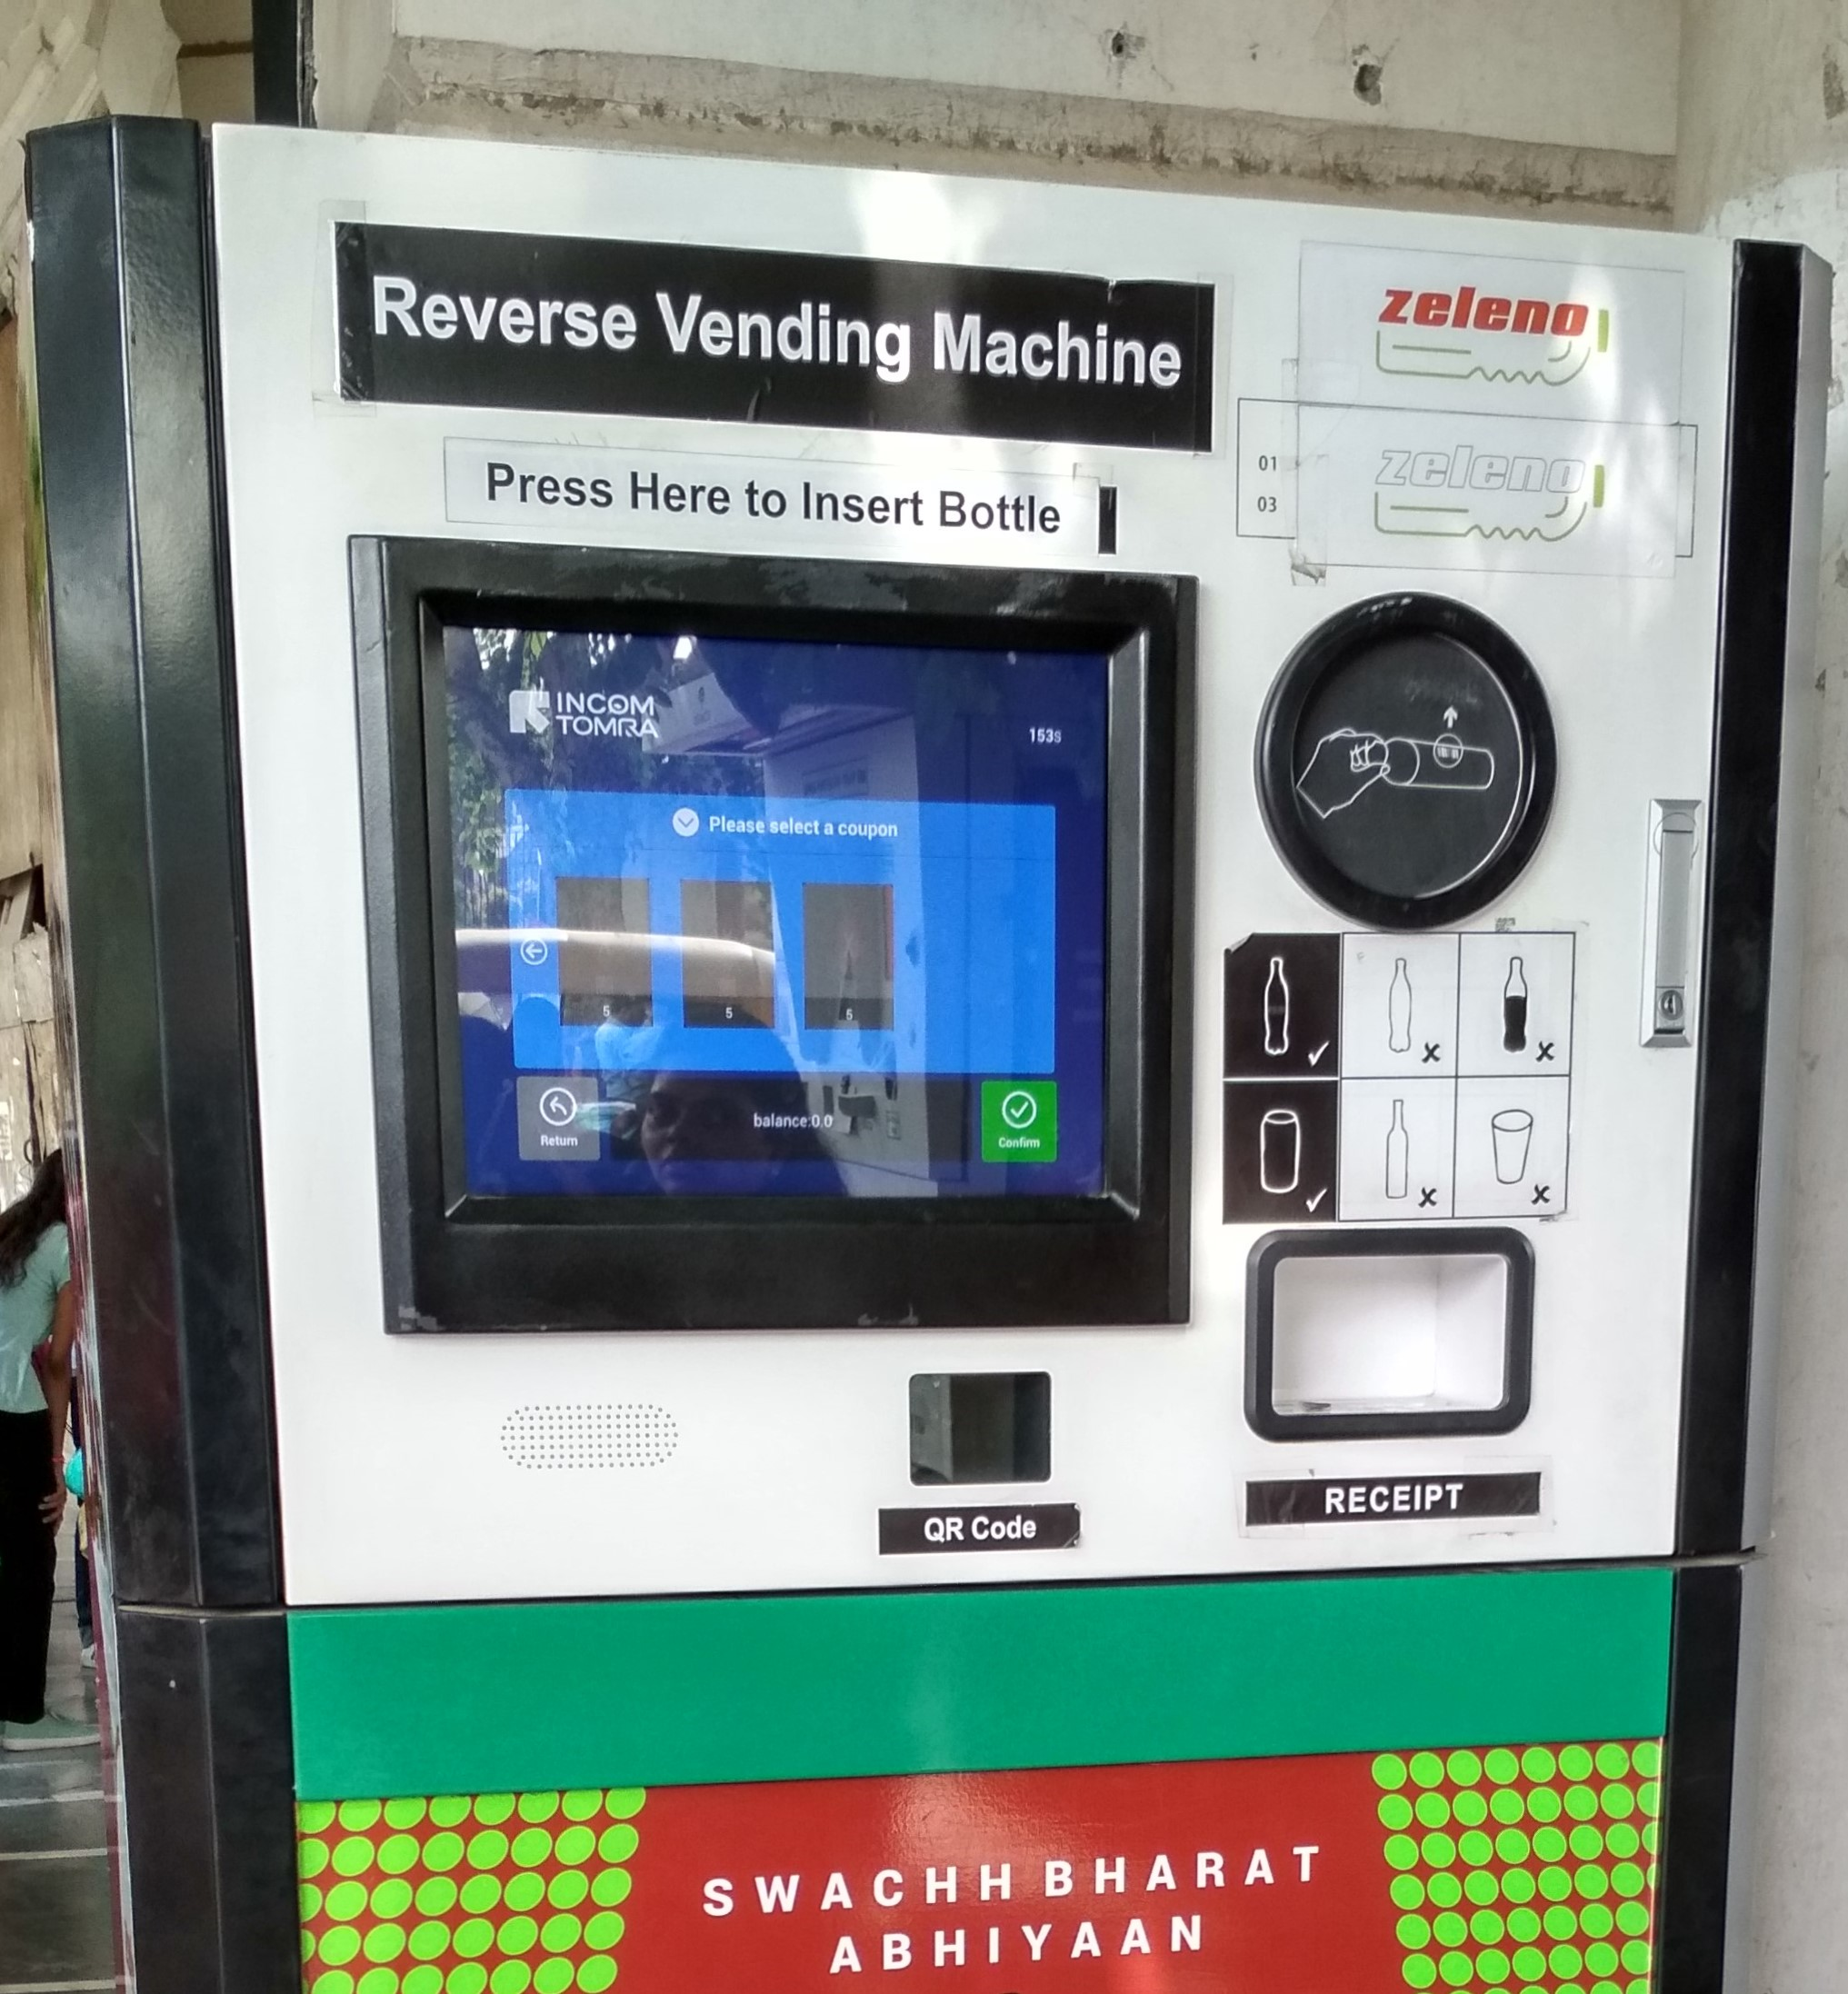 I Discovered A Reverse Vending Machine To Deposit A Plastic